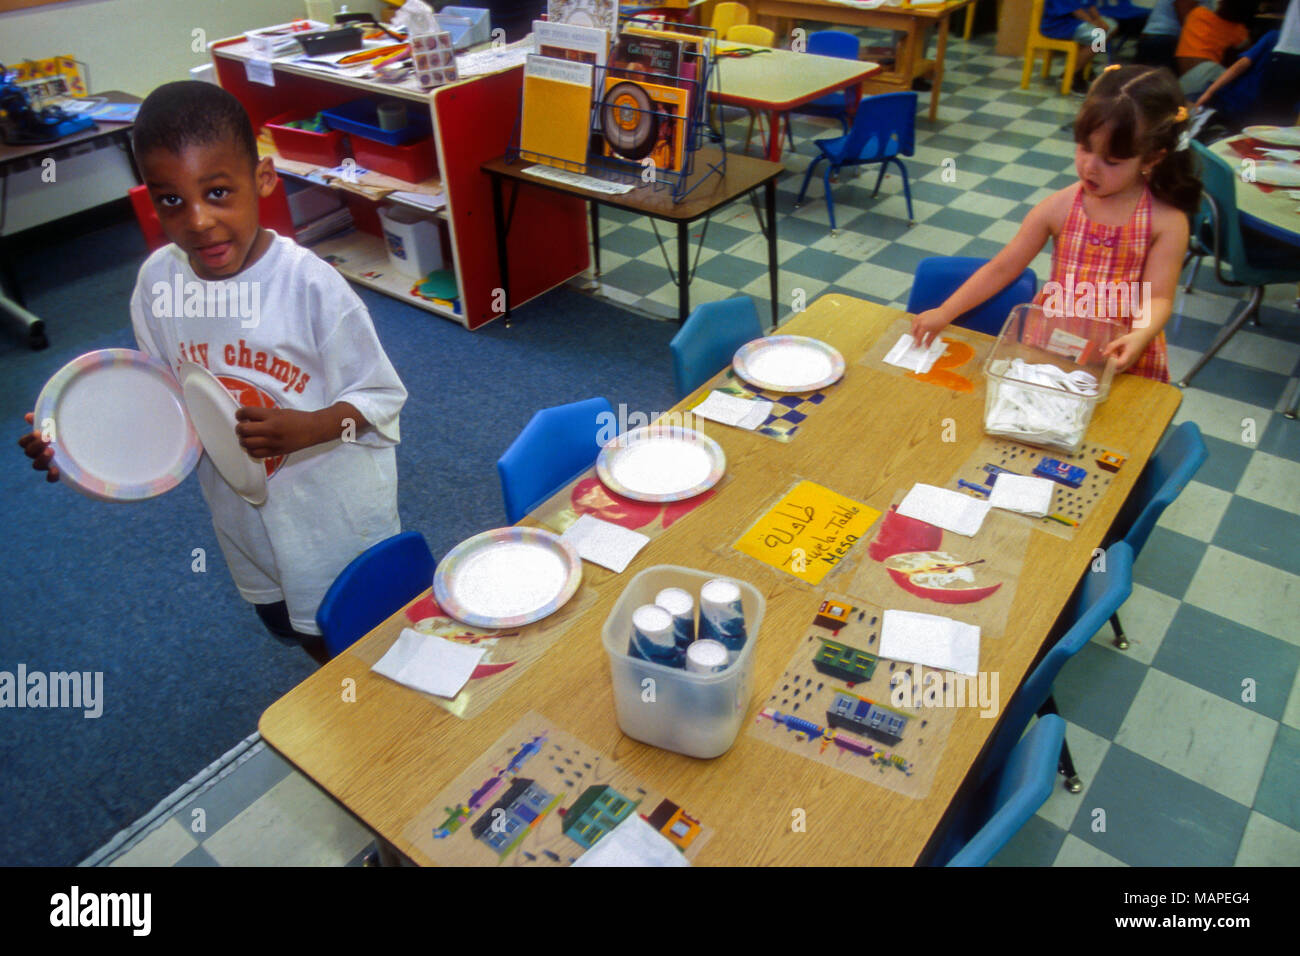 Preschool Lunch Table For Grammar Elementary And Preschool Students Prepare For Eat Lunch In School